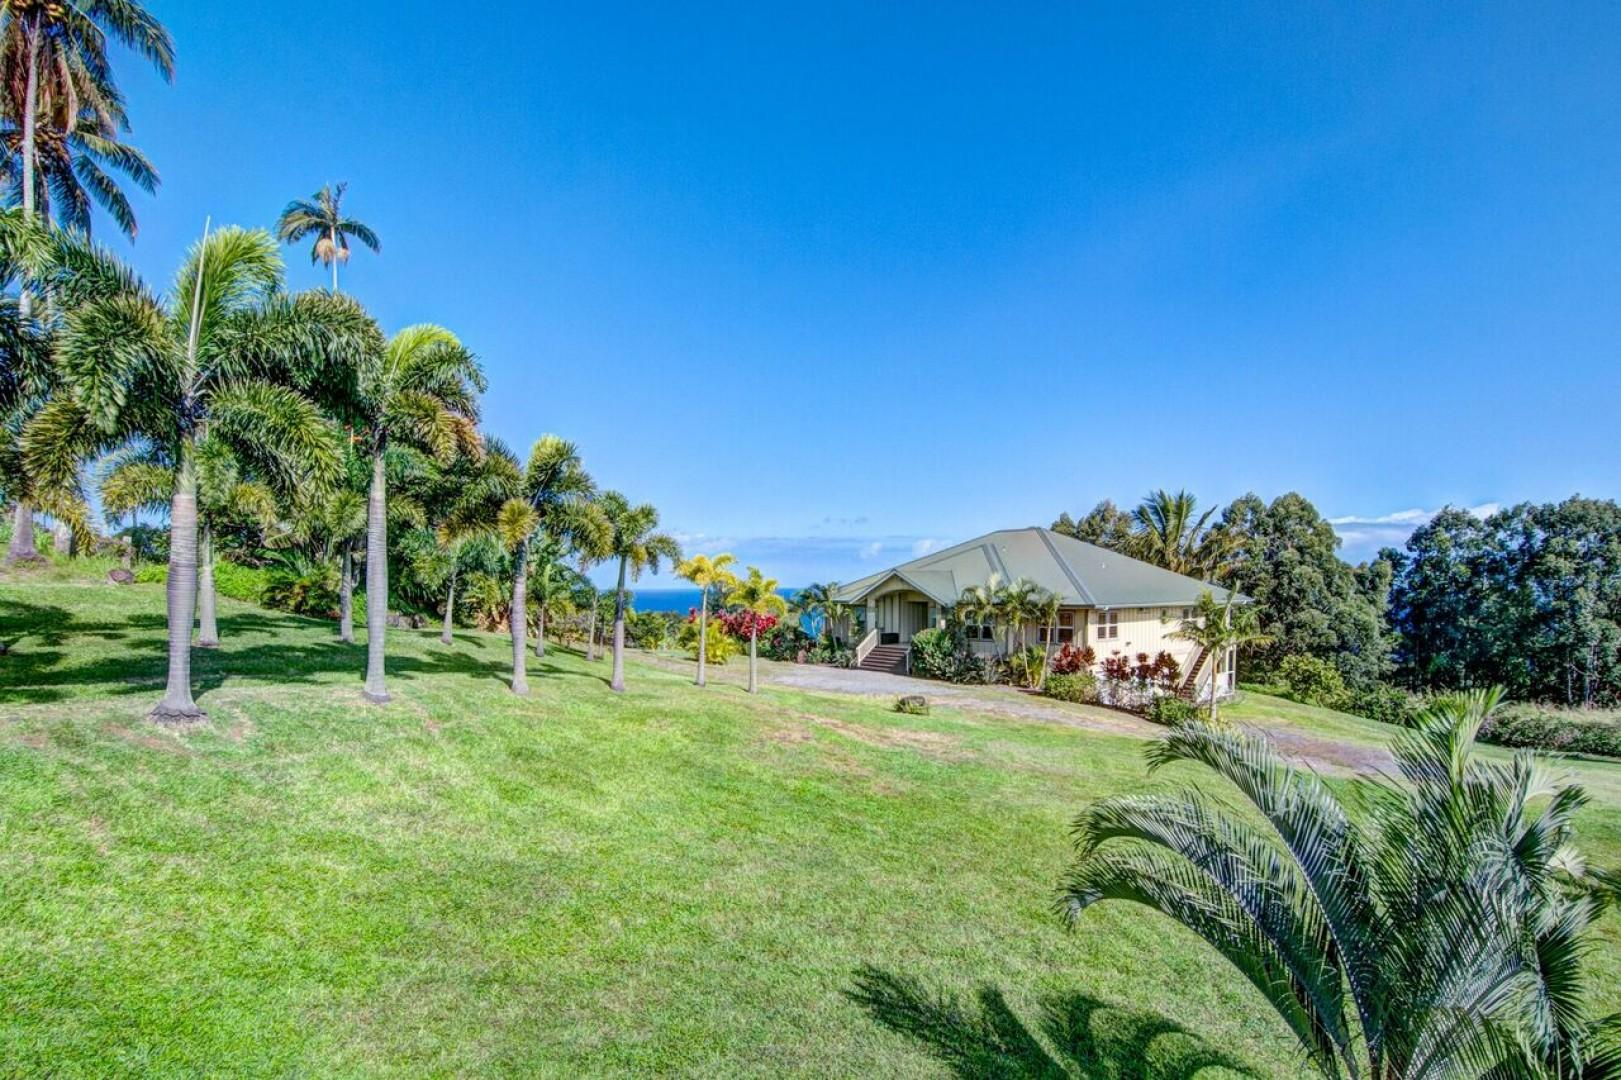 The grand lawn of Hale Luana, a sumptuous estate!